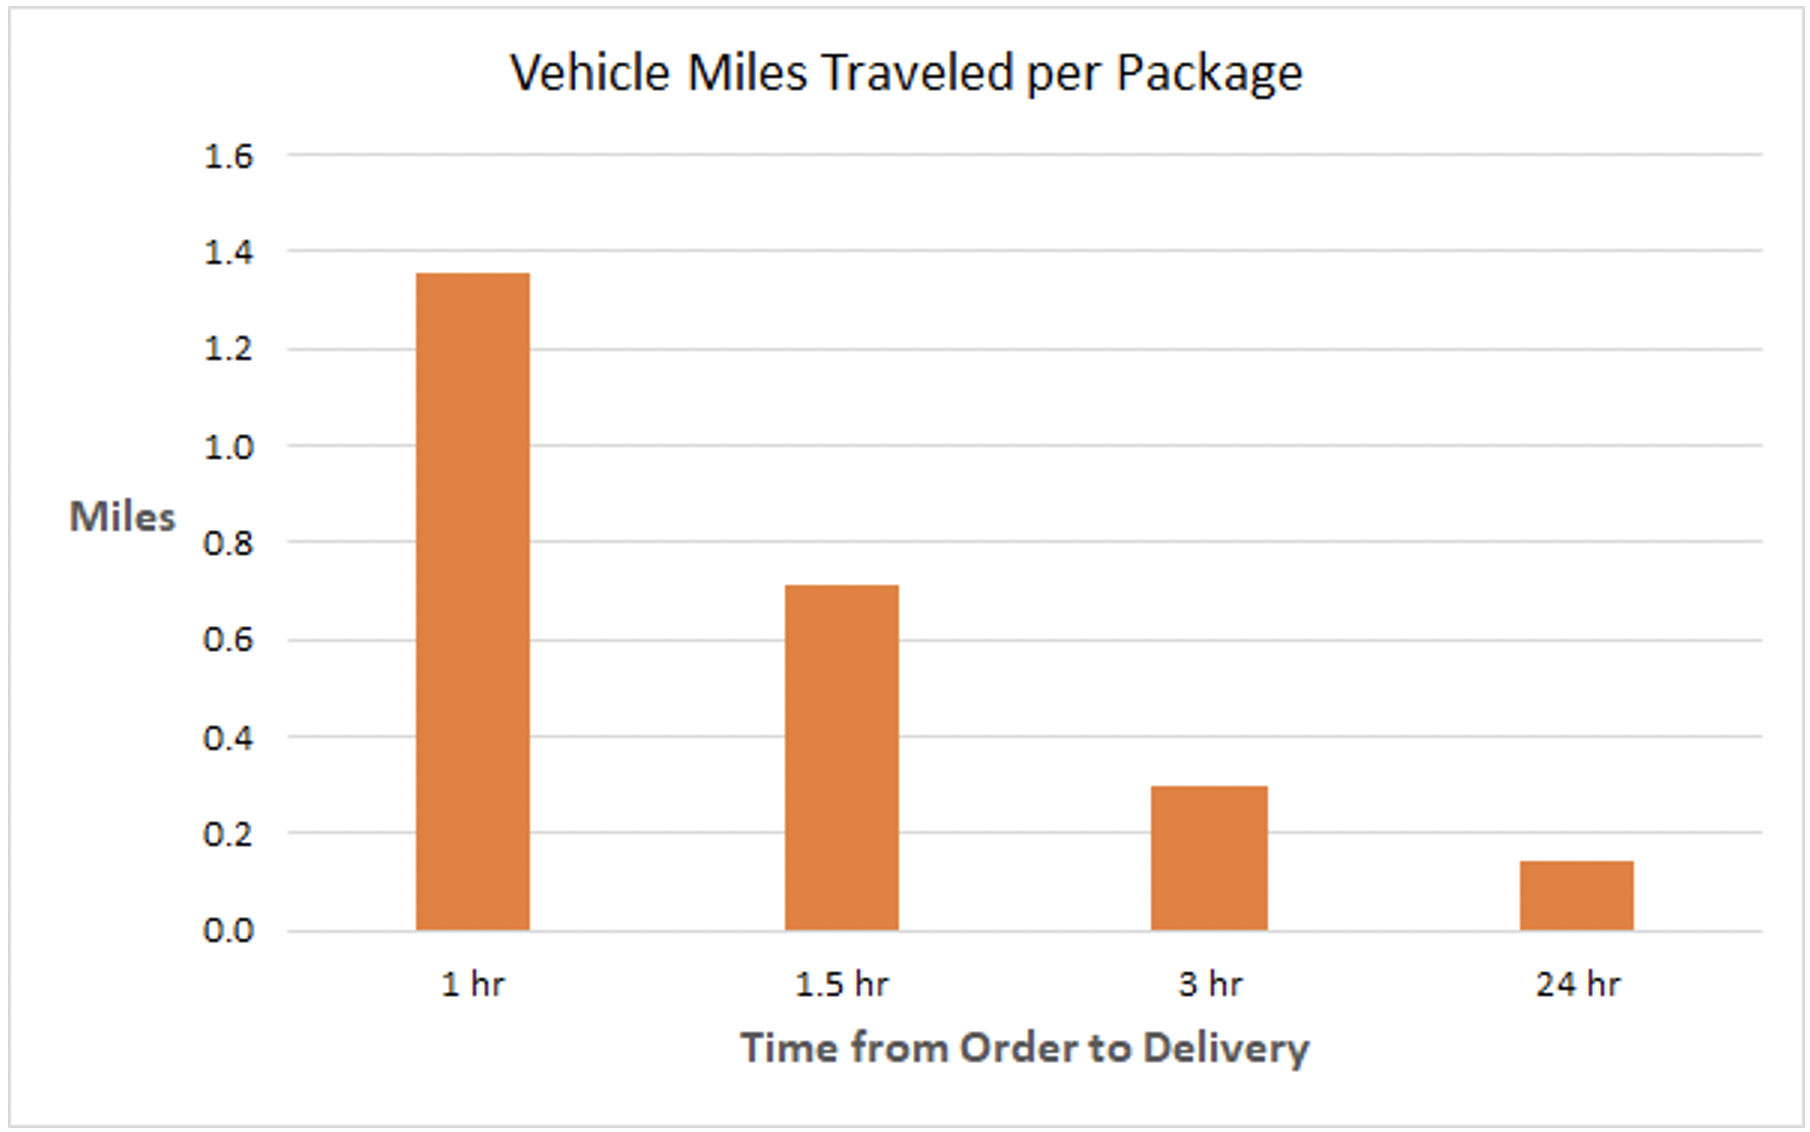 Chart showing vehicle miles traveled per package